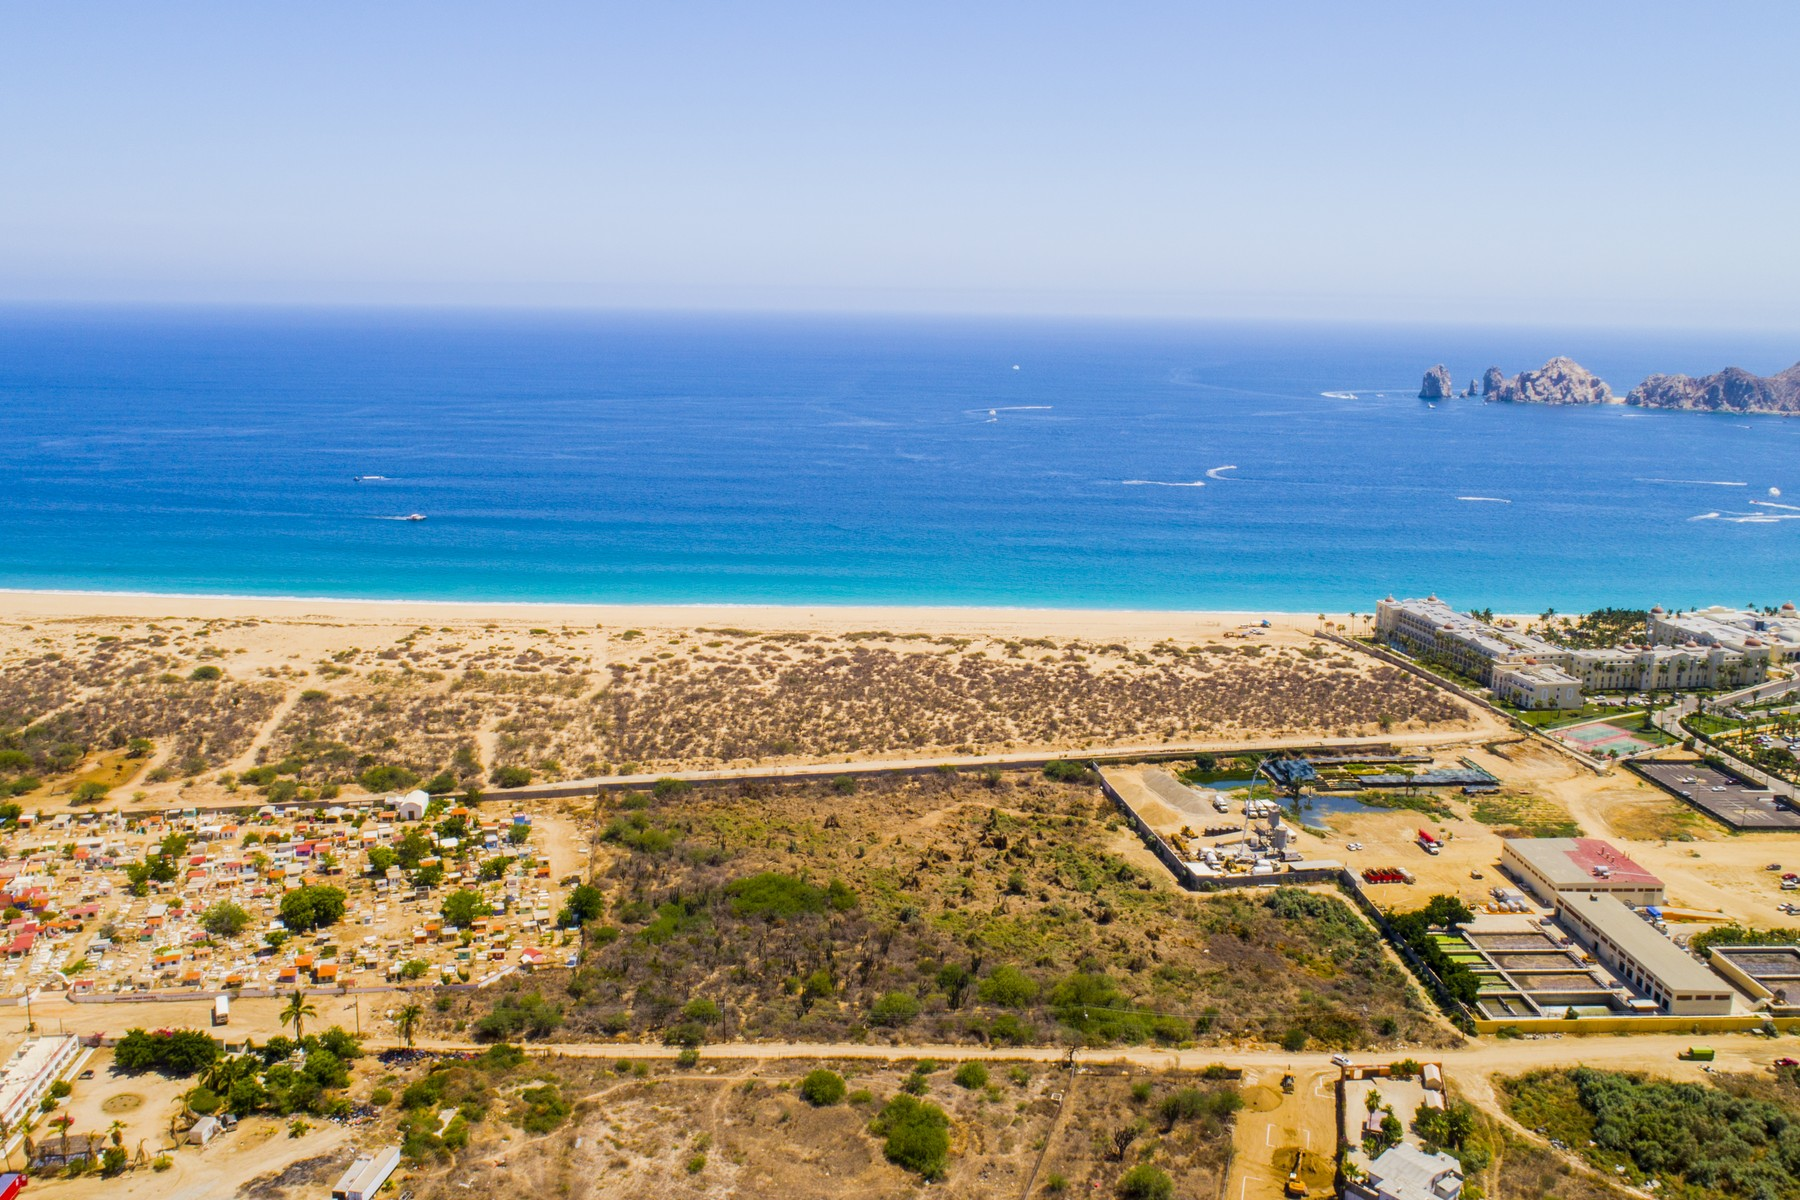 Land for Sale at La Huerta Camino Viejo a San Jose Entre Instalaciones Riu y Panteon Cabo San Lucas, 23454 Mexico